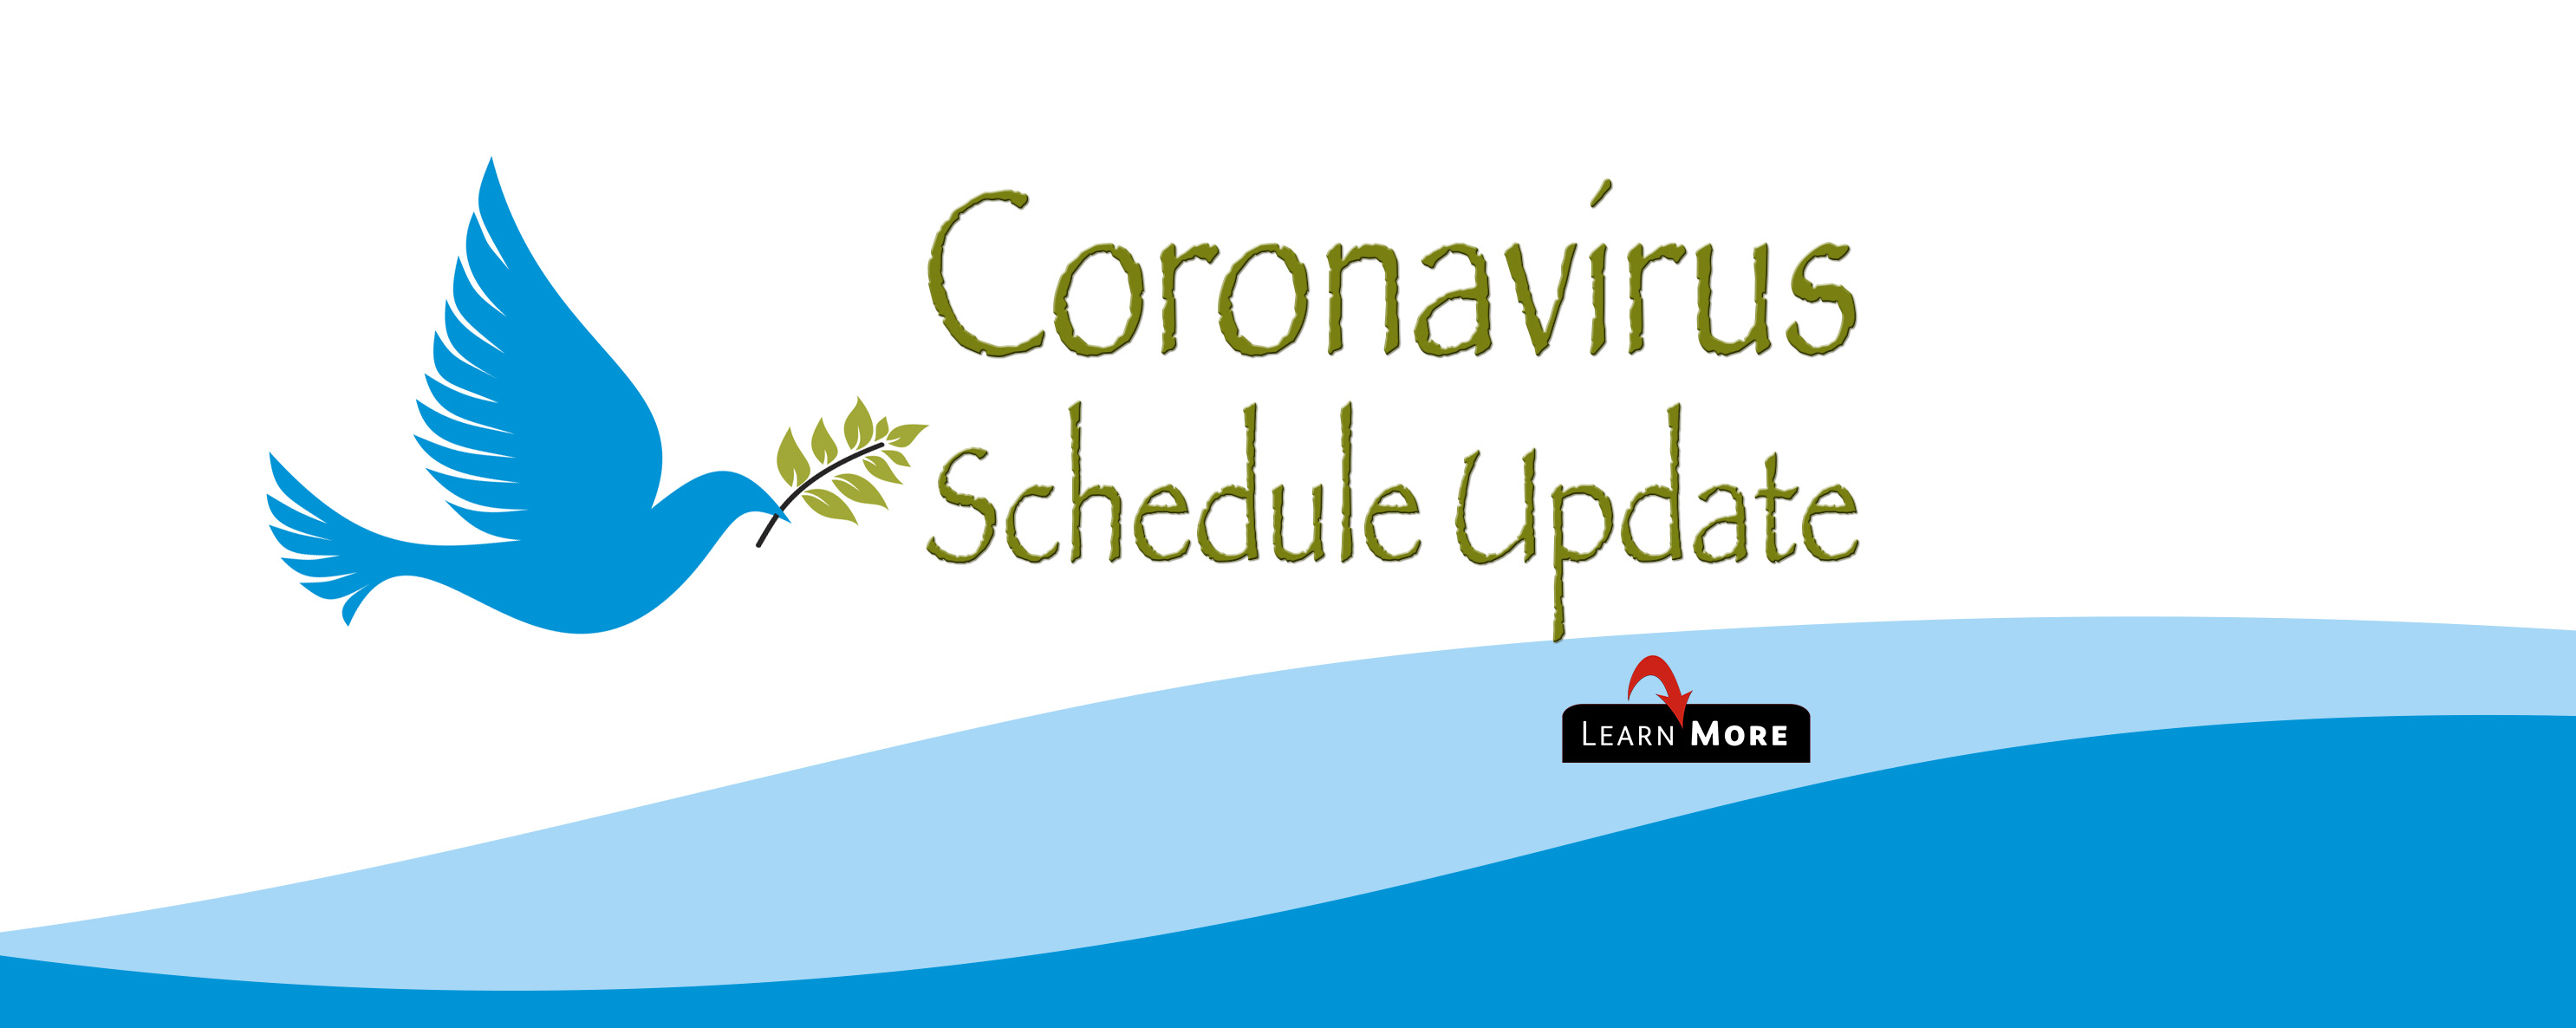 Coronavirus Schedule Update No3-rotator